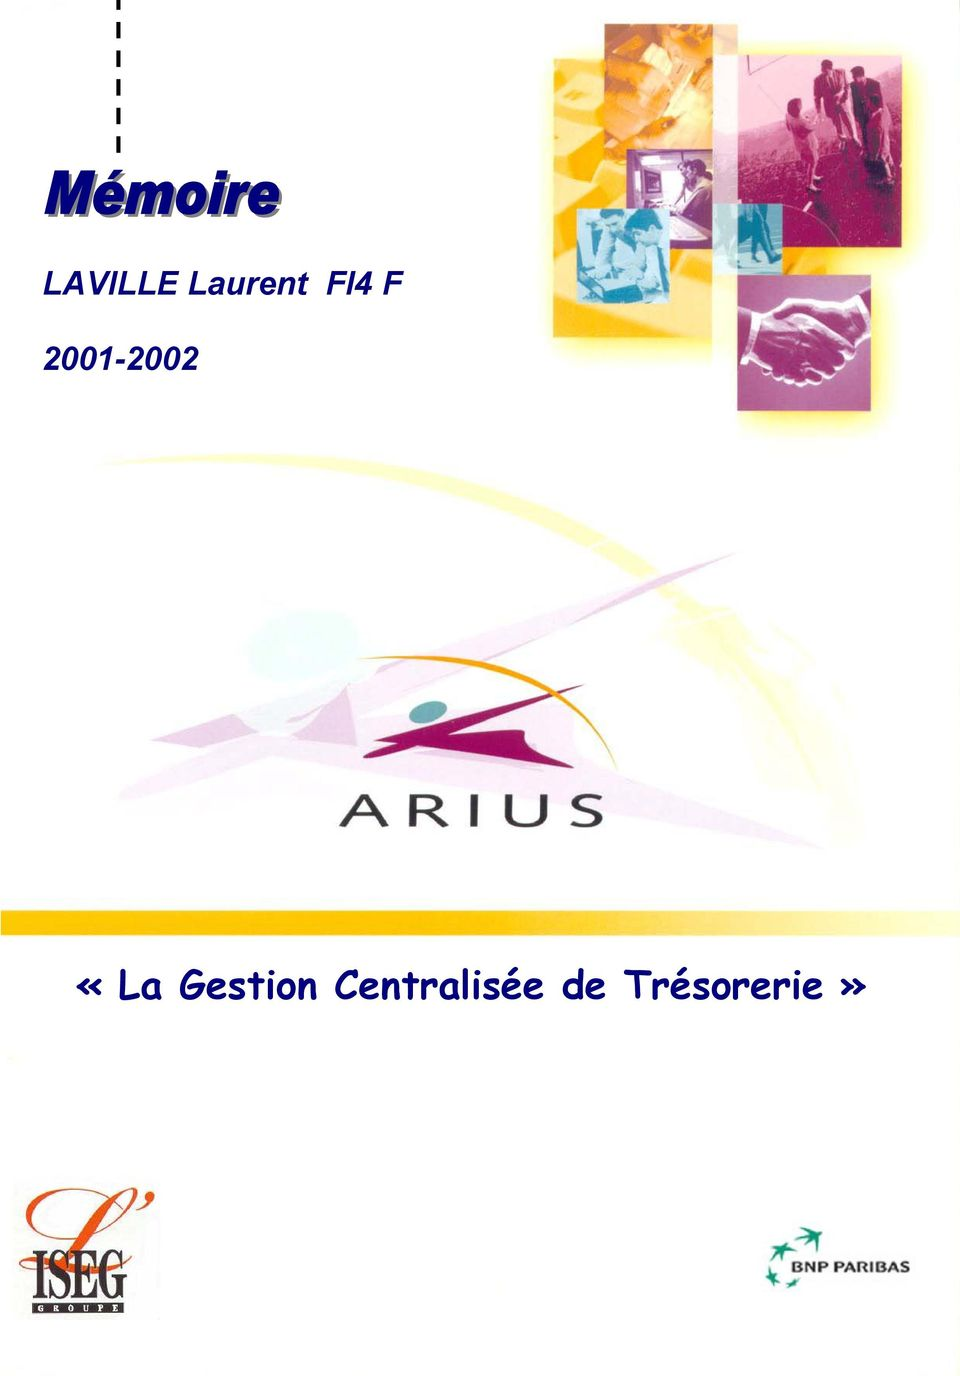 LAVILLE Laurent, «La Gestion de